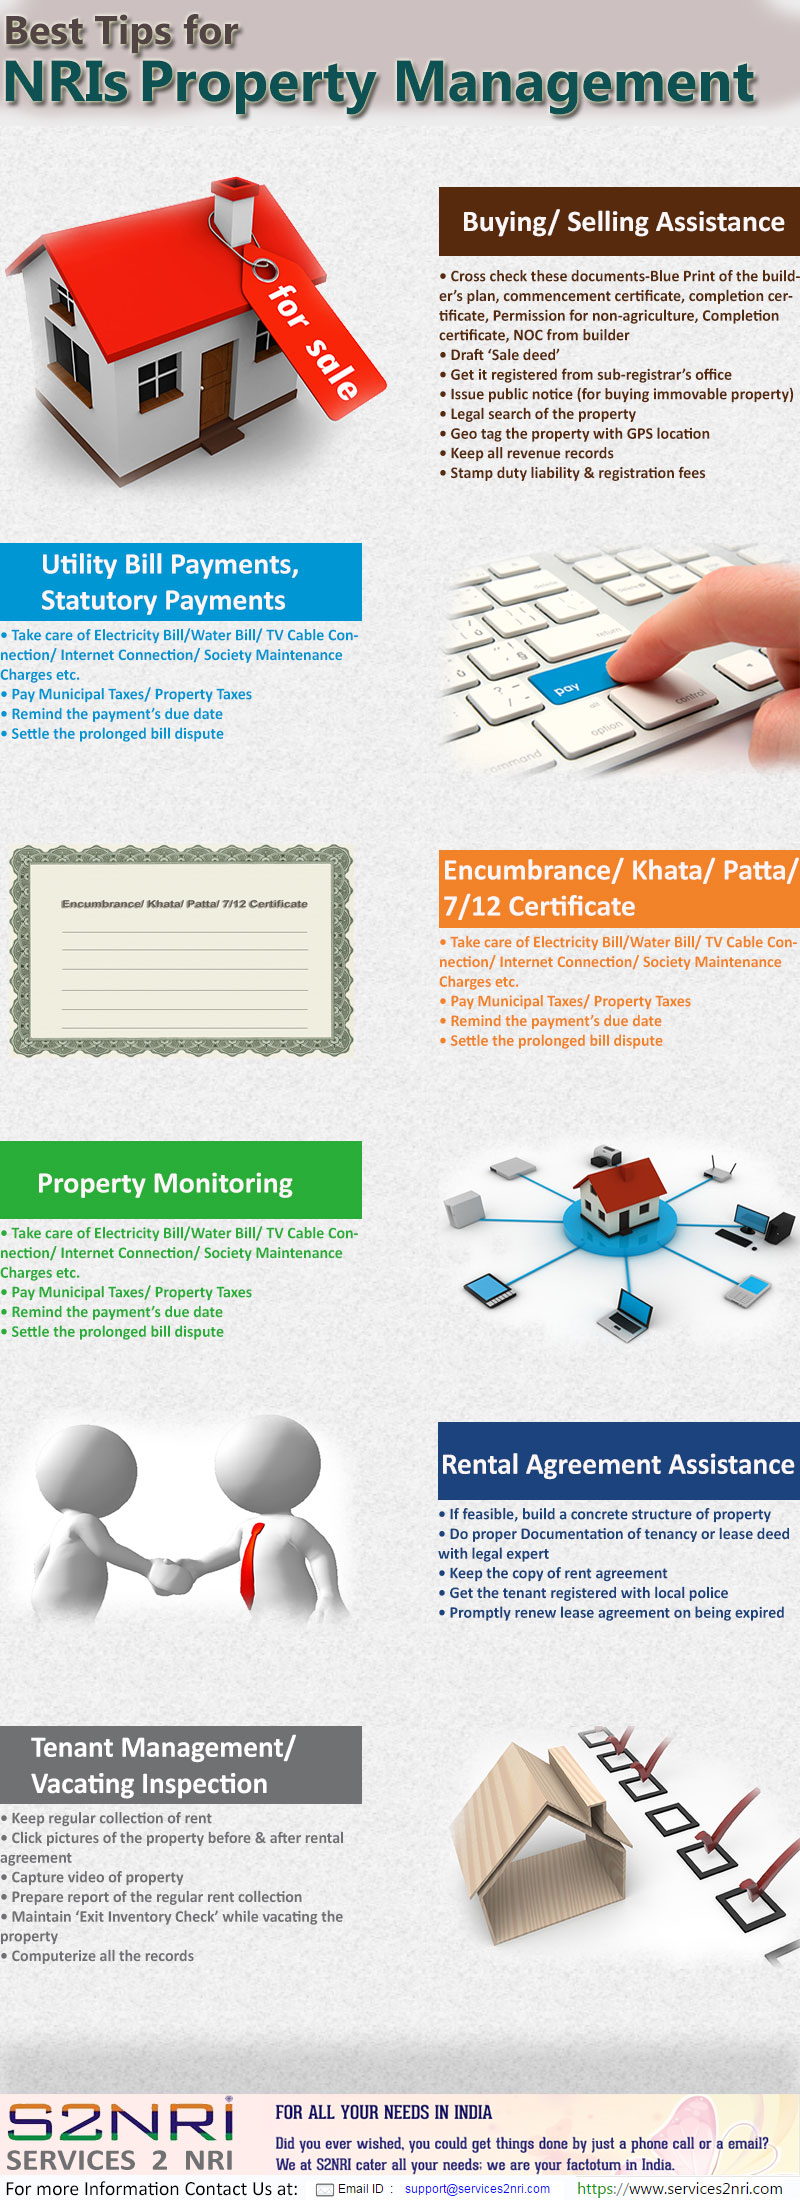 NRIs property management